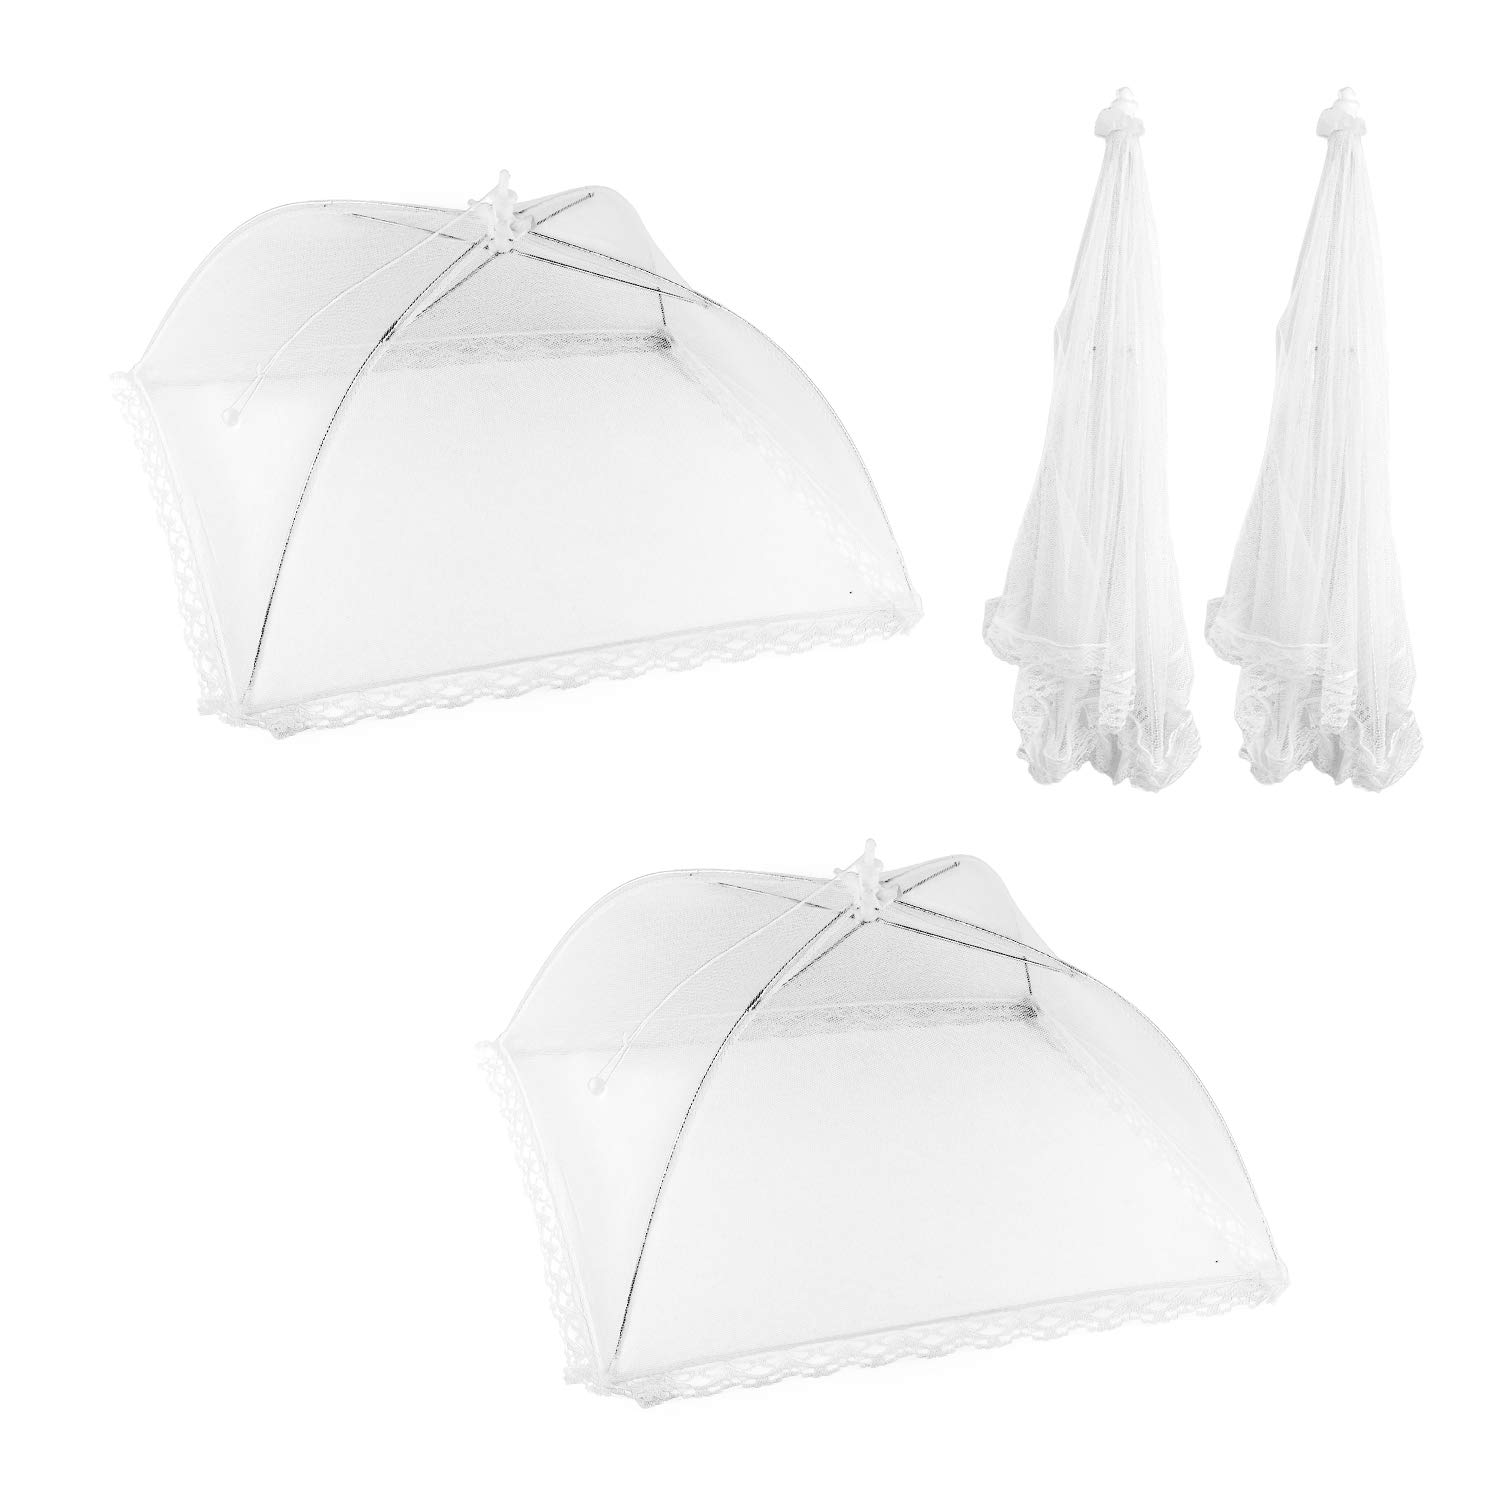 Large Pop-Up Mesh Wire Frame Screen Food Tent Plate Covers for Outdoor Picnic, Barbecue, Camping, Fruit Dinner Protection, Wedding, Birthday, Party & Event Supplies (2 Pack)